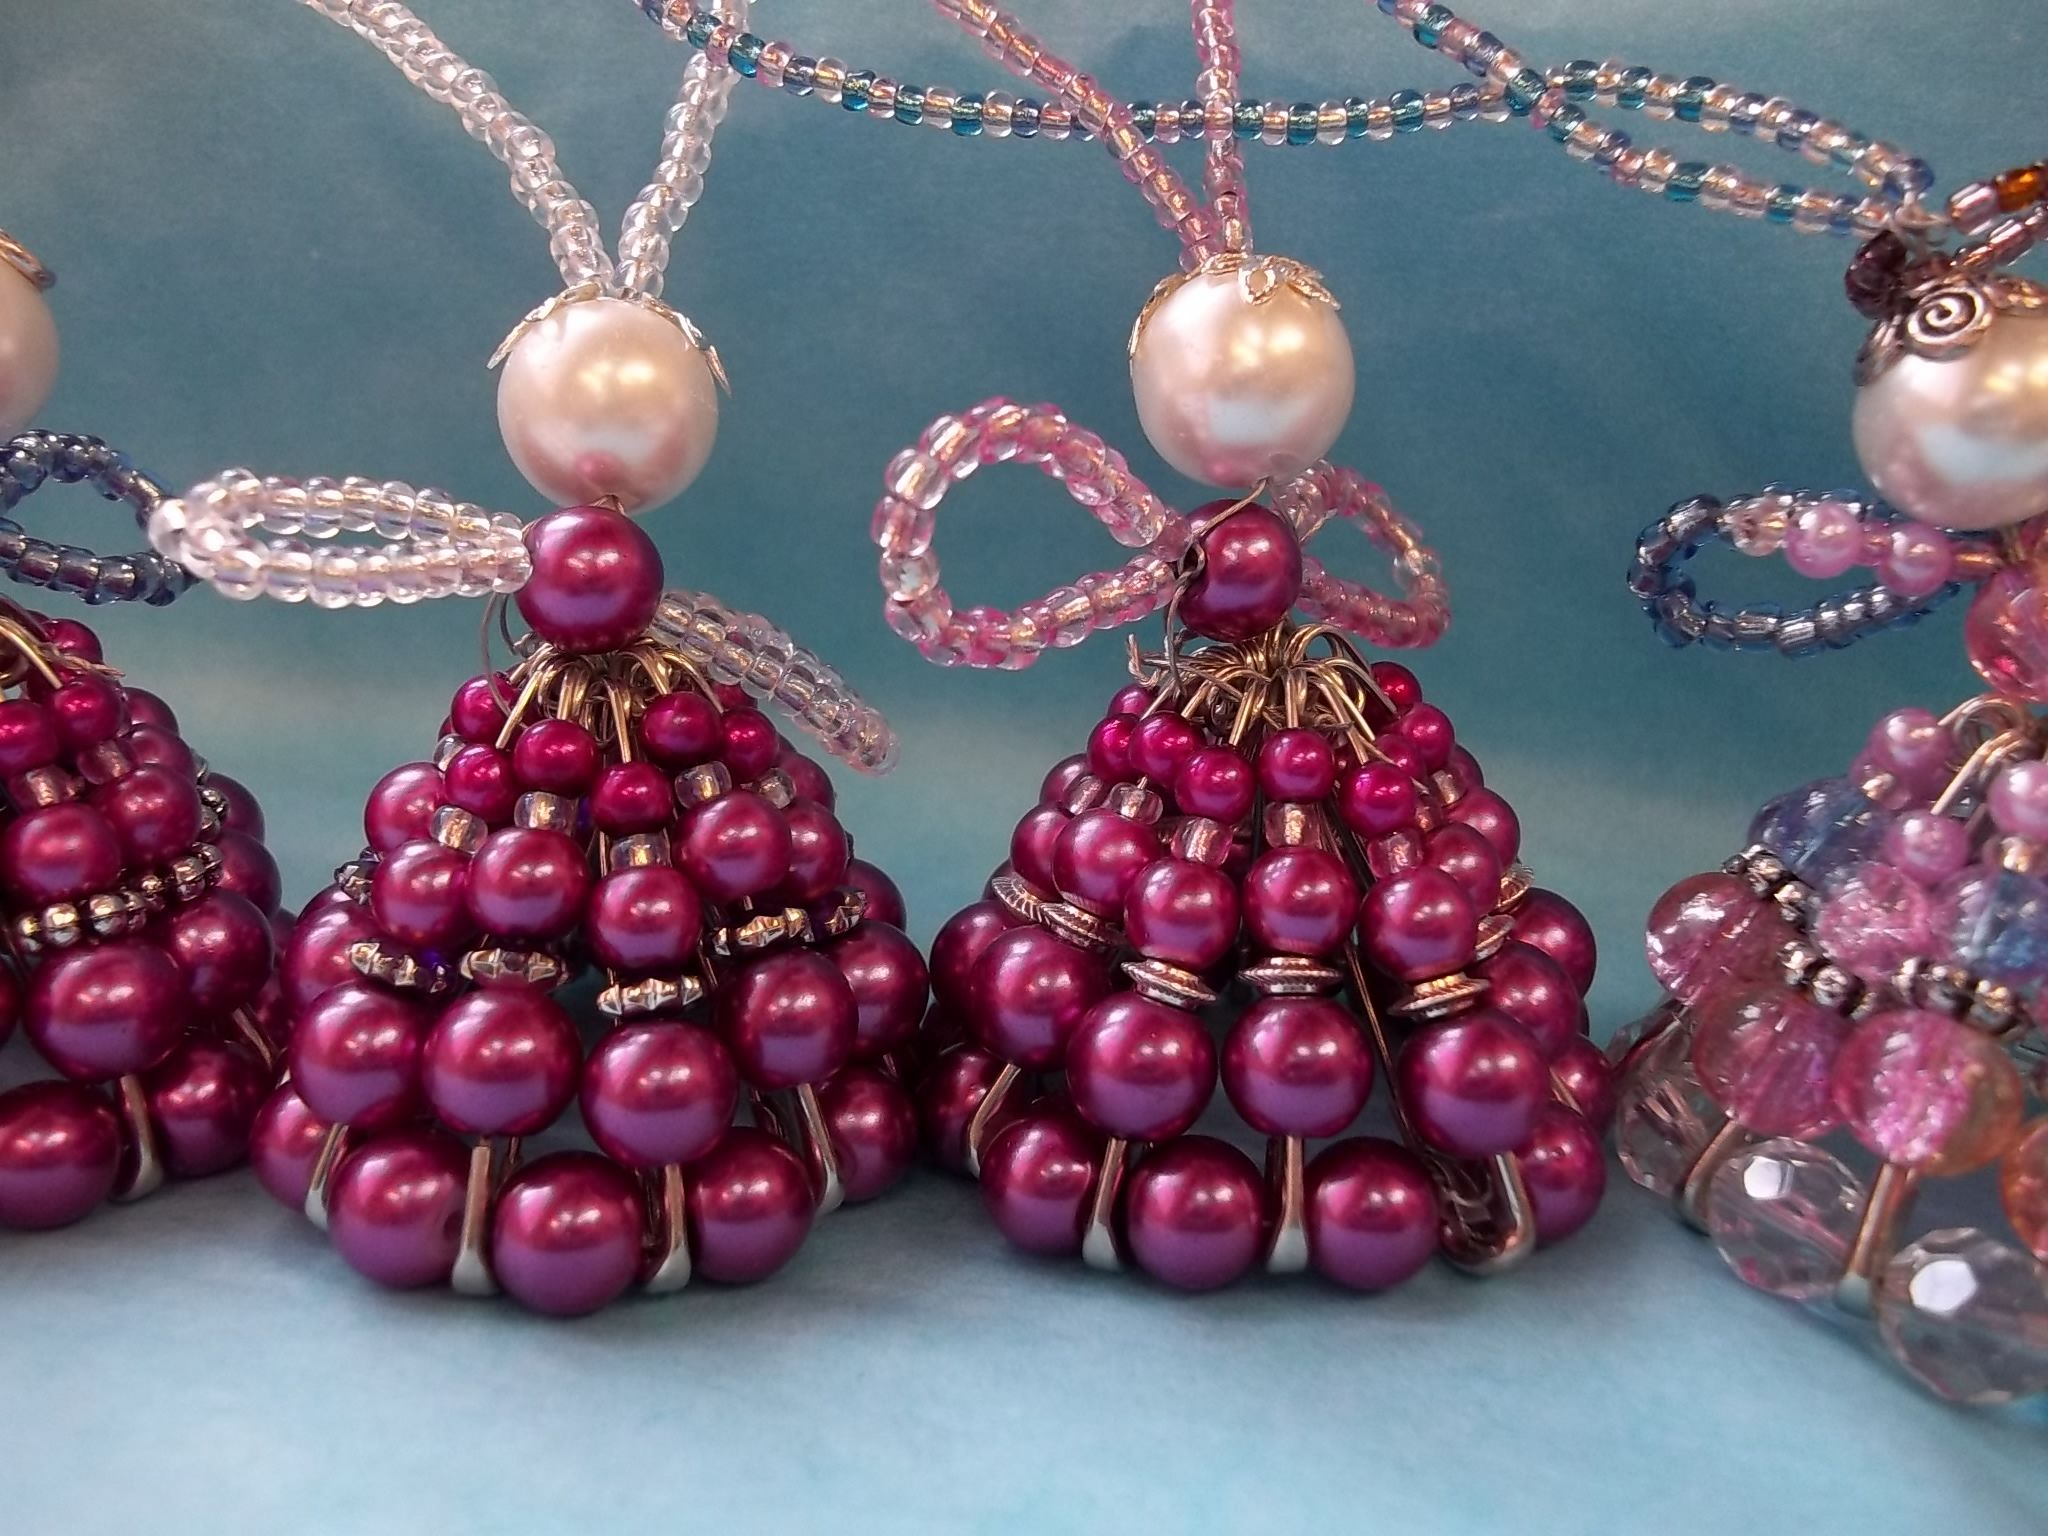 Handmade christmas ornaments with beads - Angel Ornaments To Make Beads Host Of Christmas Angels These Angels Are